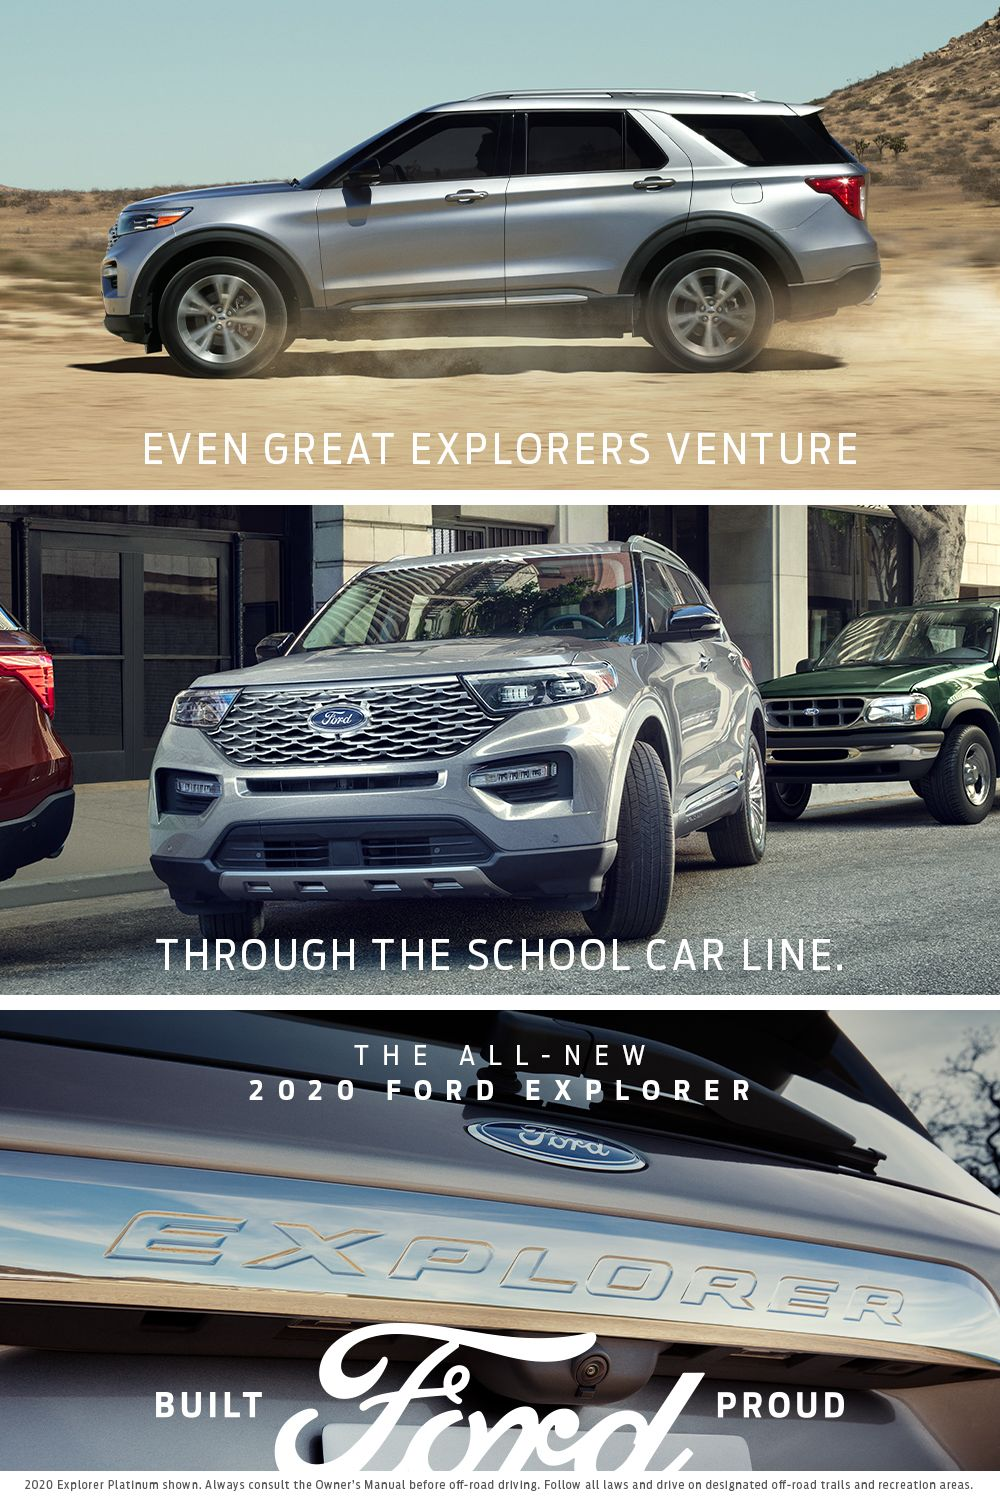 The All New 2020 Ford Explorer In 2020 2020 Ford Explorer Ford Explorer Car Ford